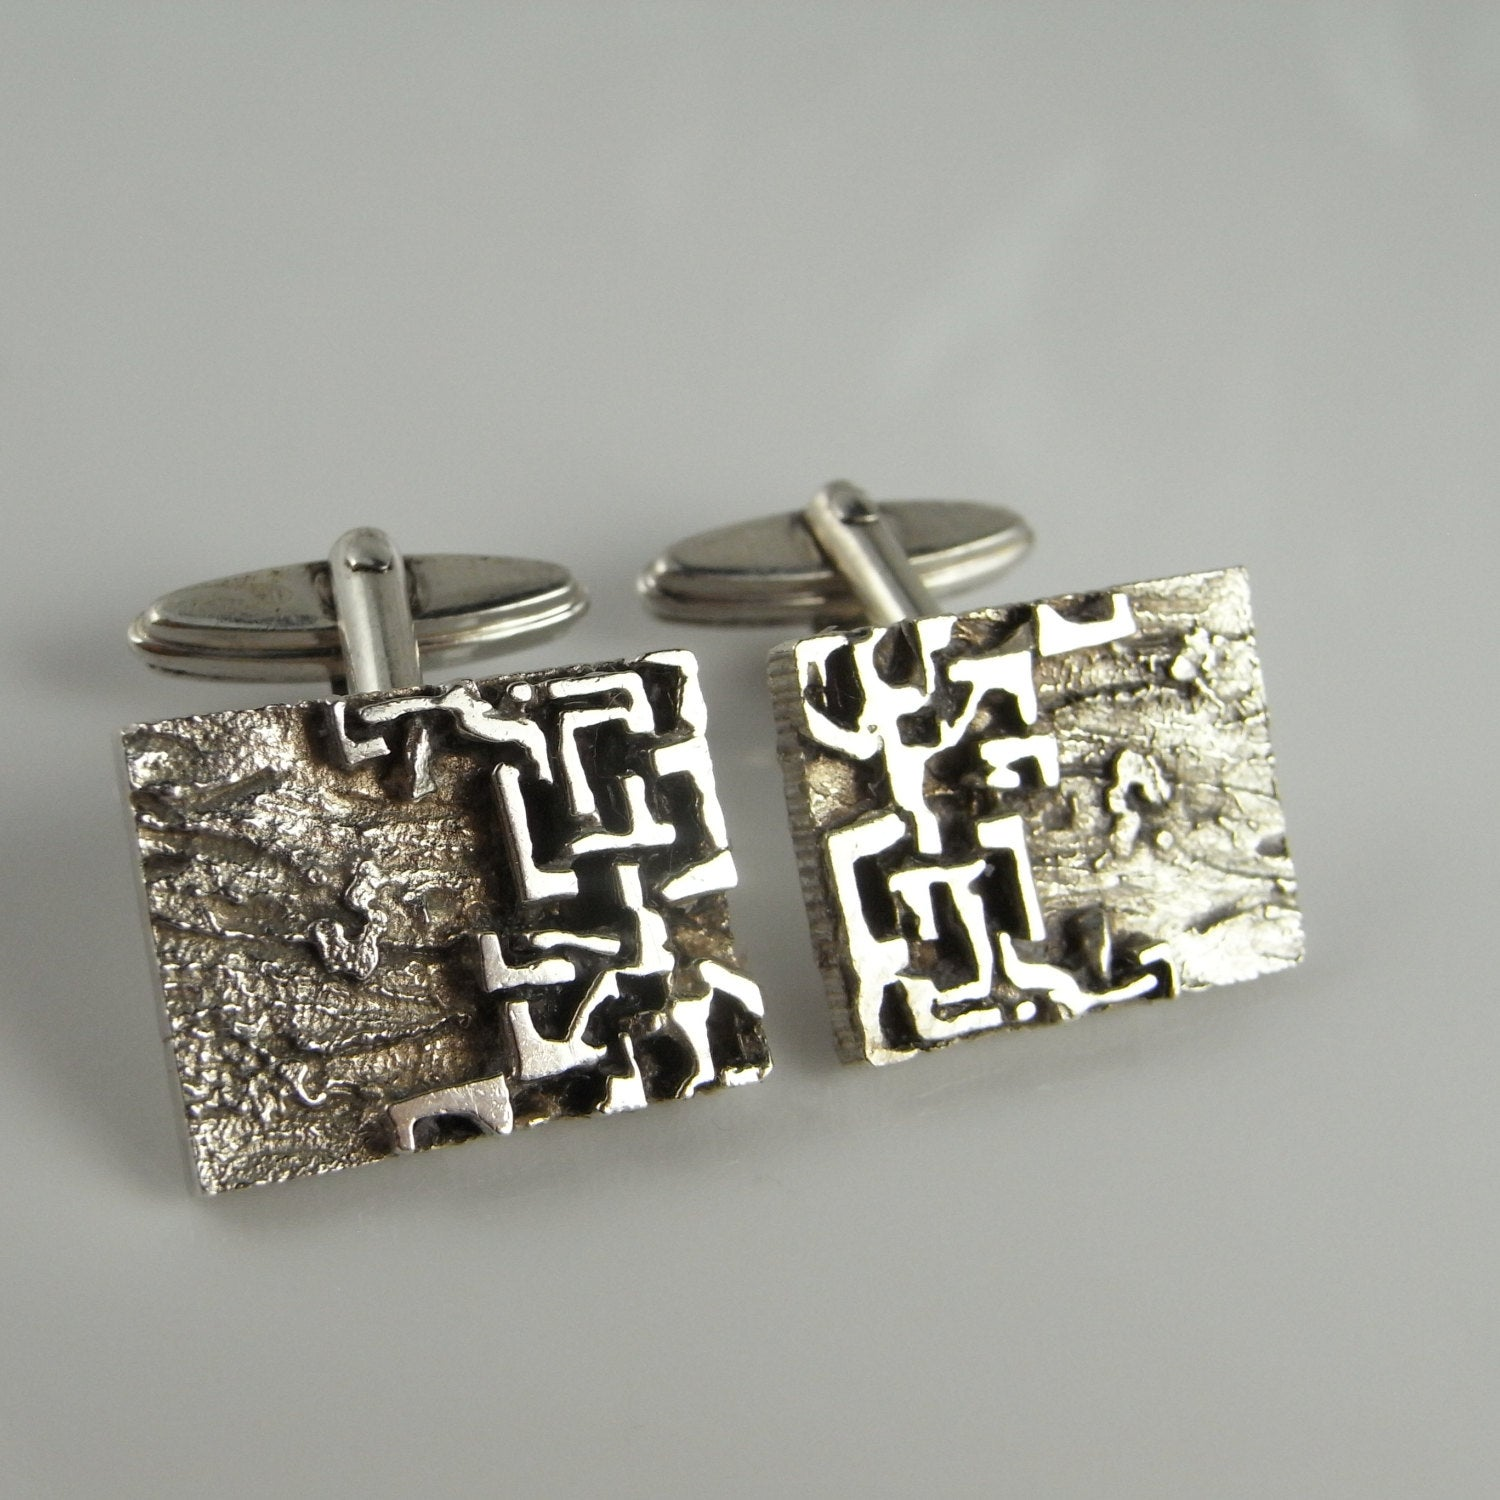 Vintage Silver European Textured Abstract Wedding Groom Cuff Links Accessories Bridal Cufflinks Jewelry Gift For Brother Fiance Him 1970S